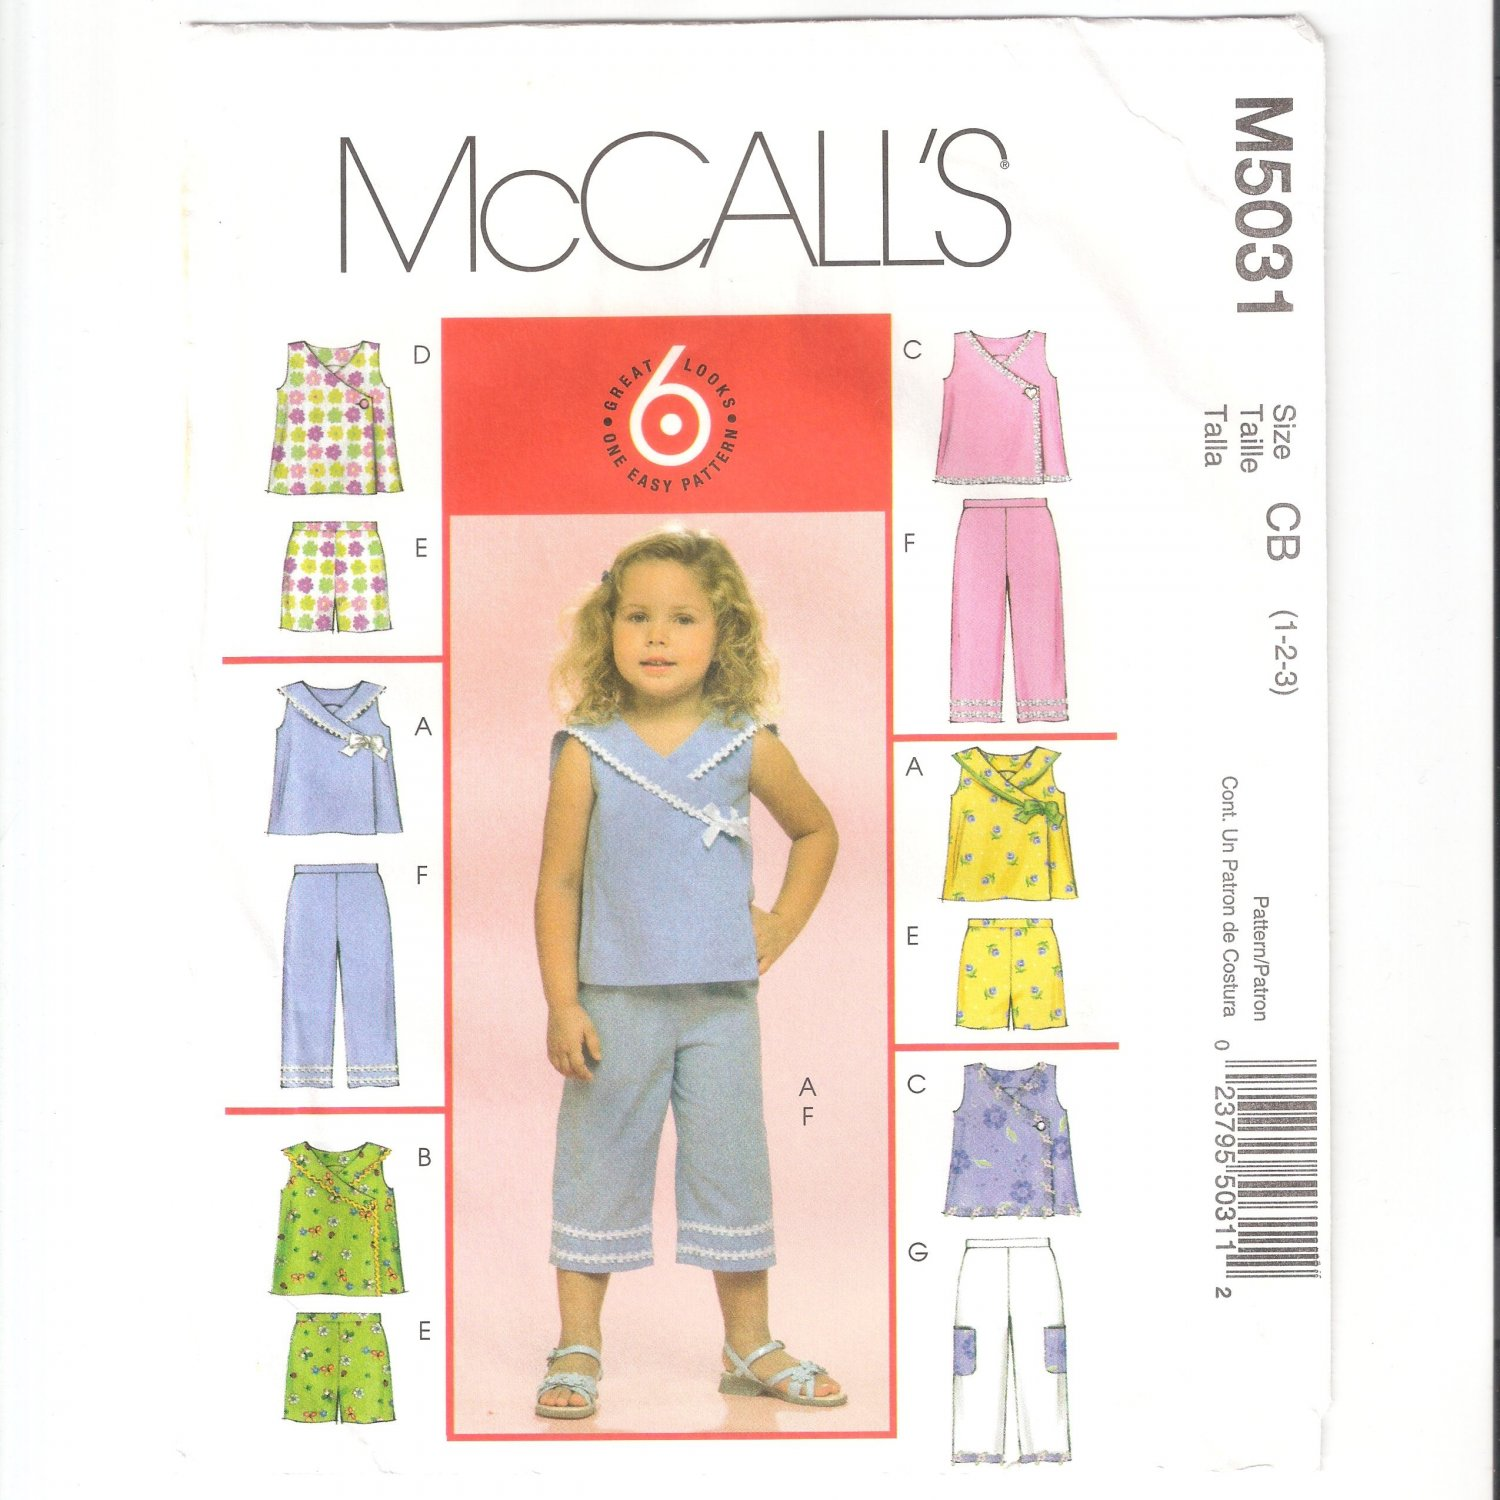 McCall's M5031 Toddlers Tops Shorts and Capri Pants Sewing Pattern 5031 Size CB (1, 2, 3) 2006